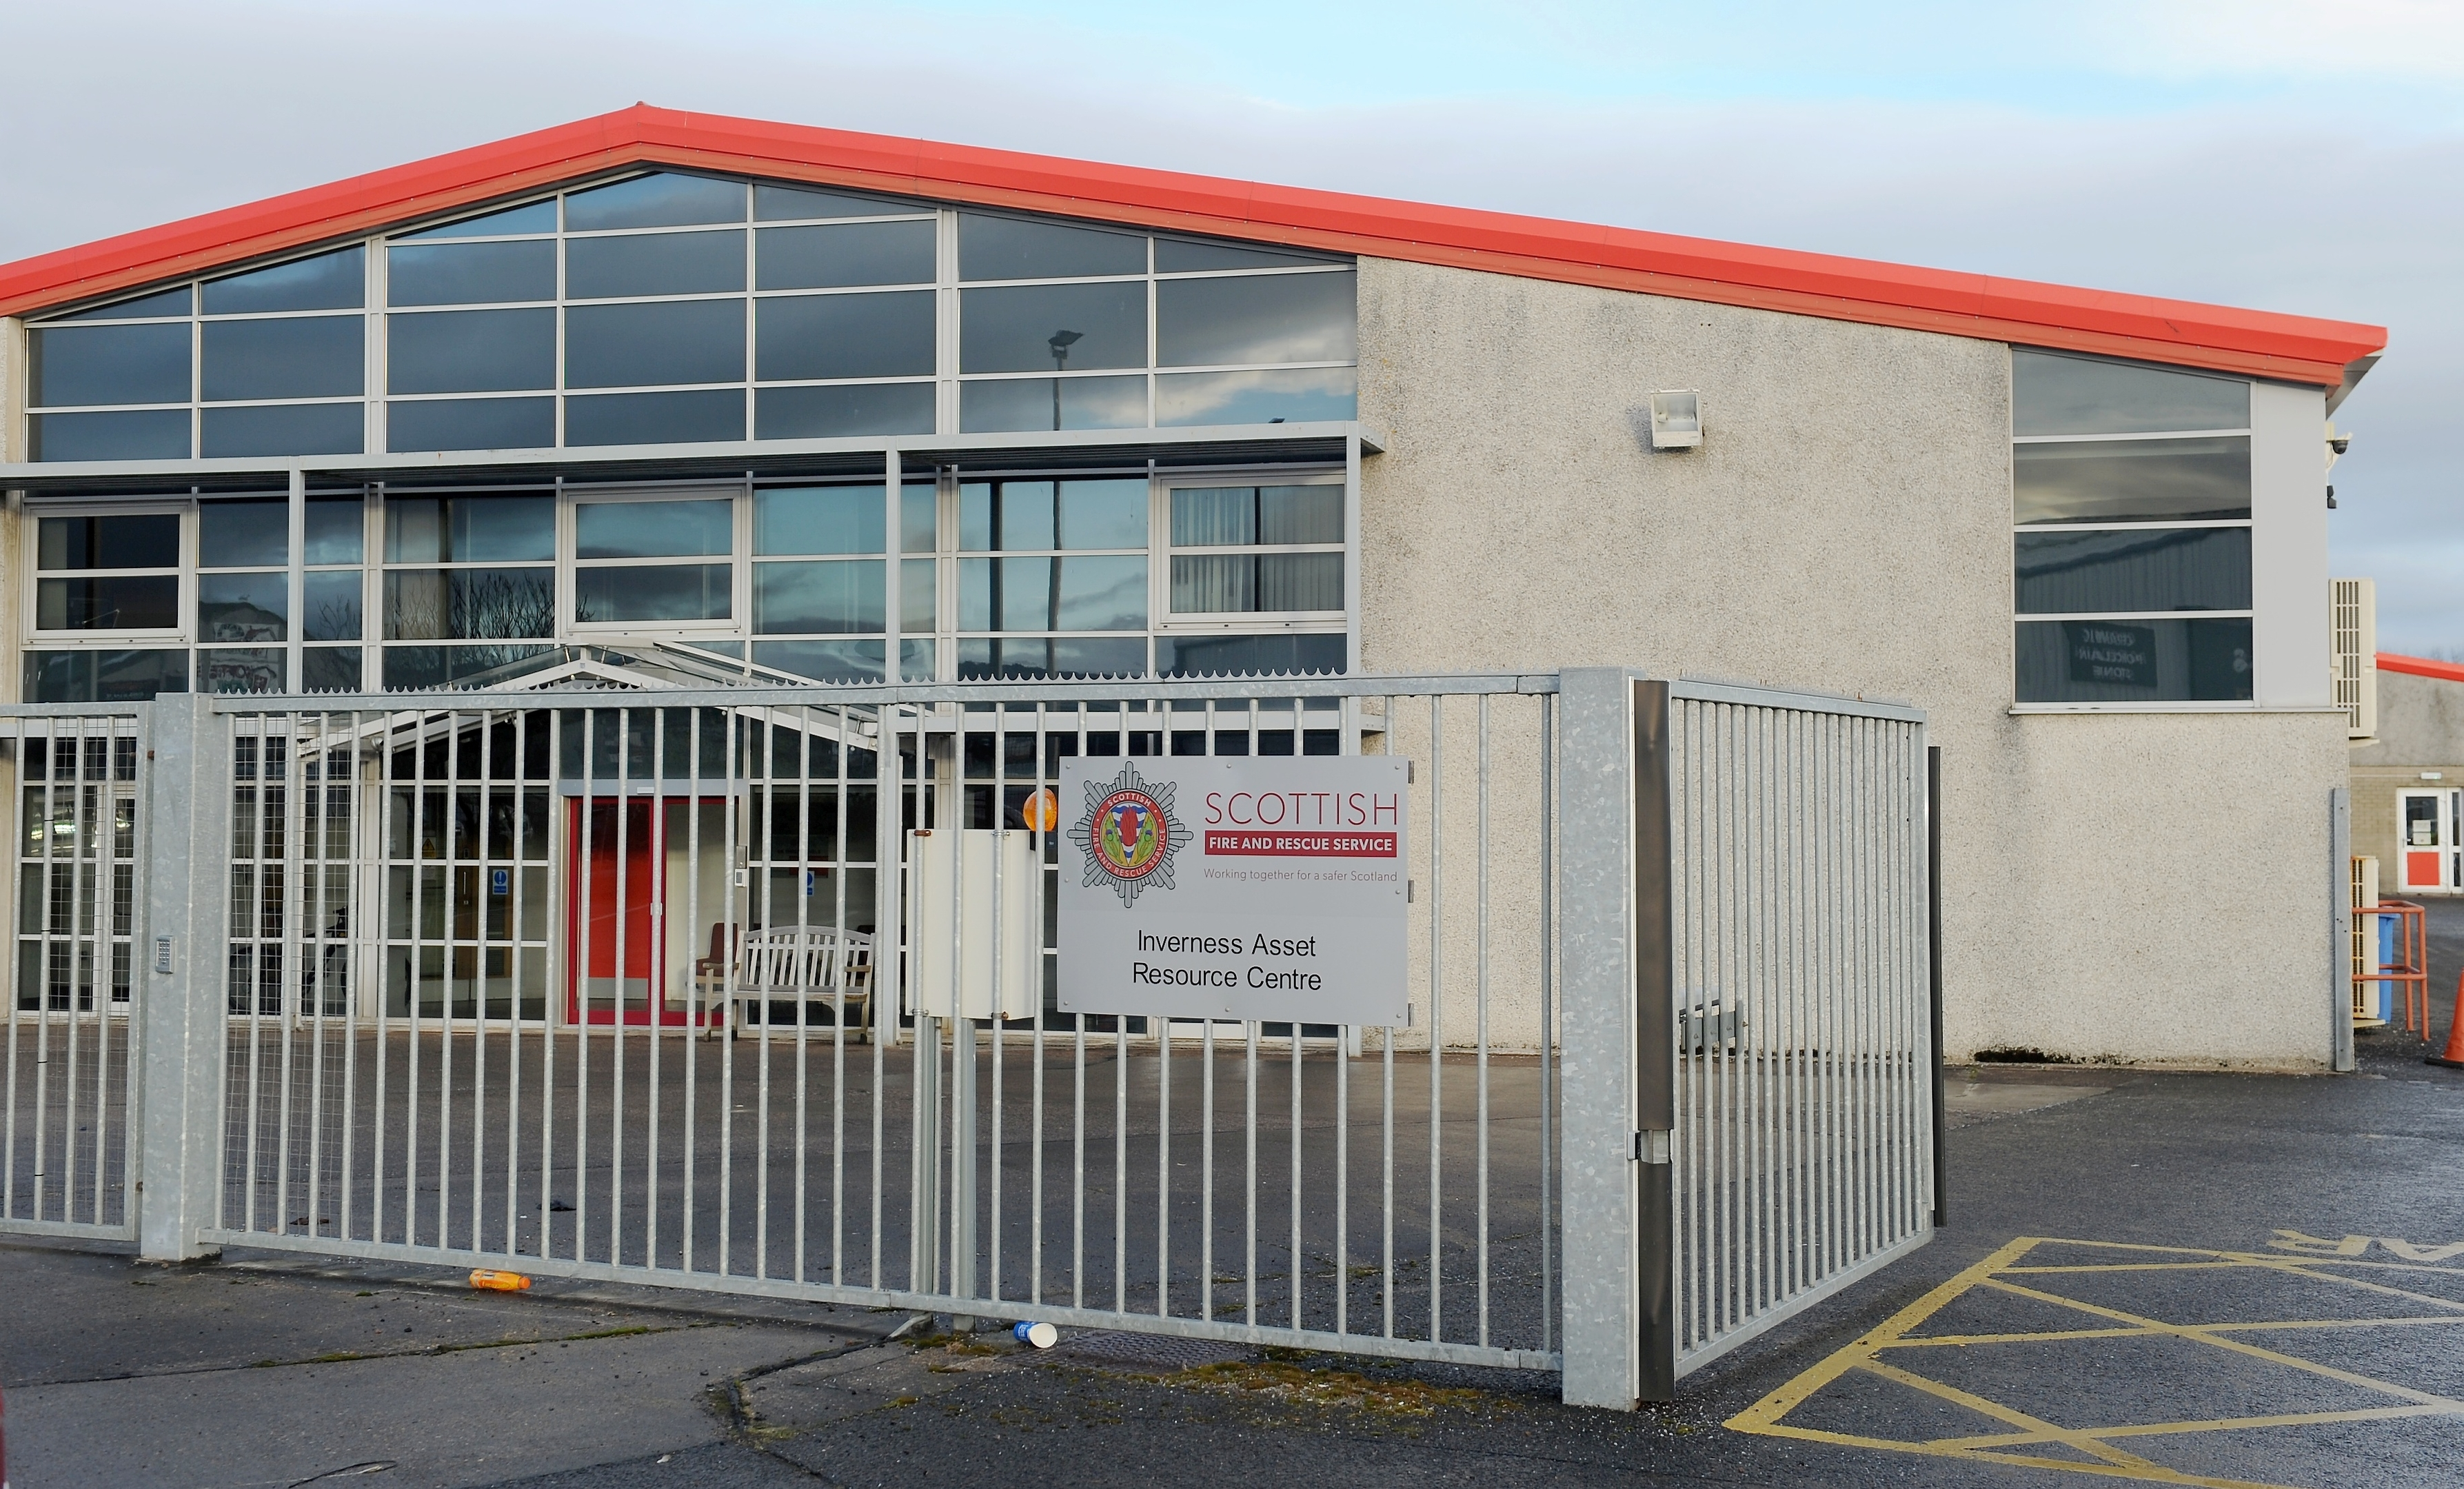 The former Inverness Control room of the Scottish Fire and Rescue Service which has now been transferred to Dundee.